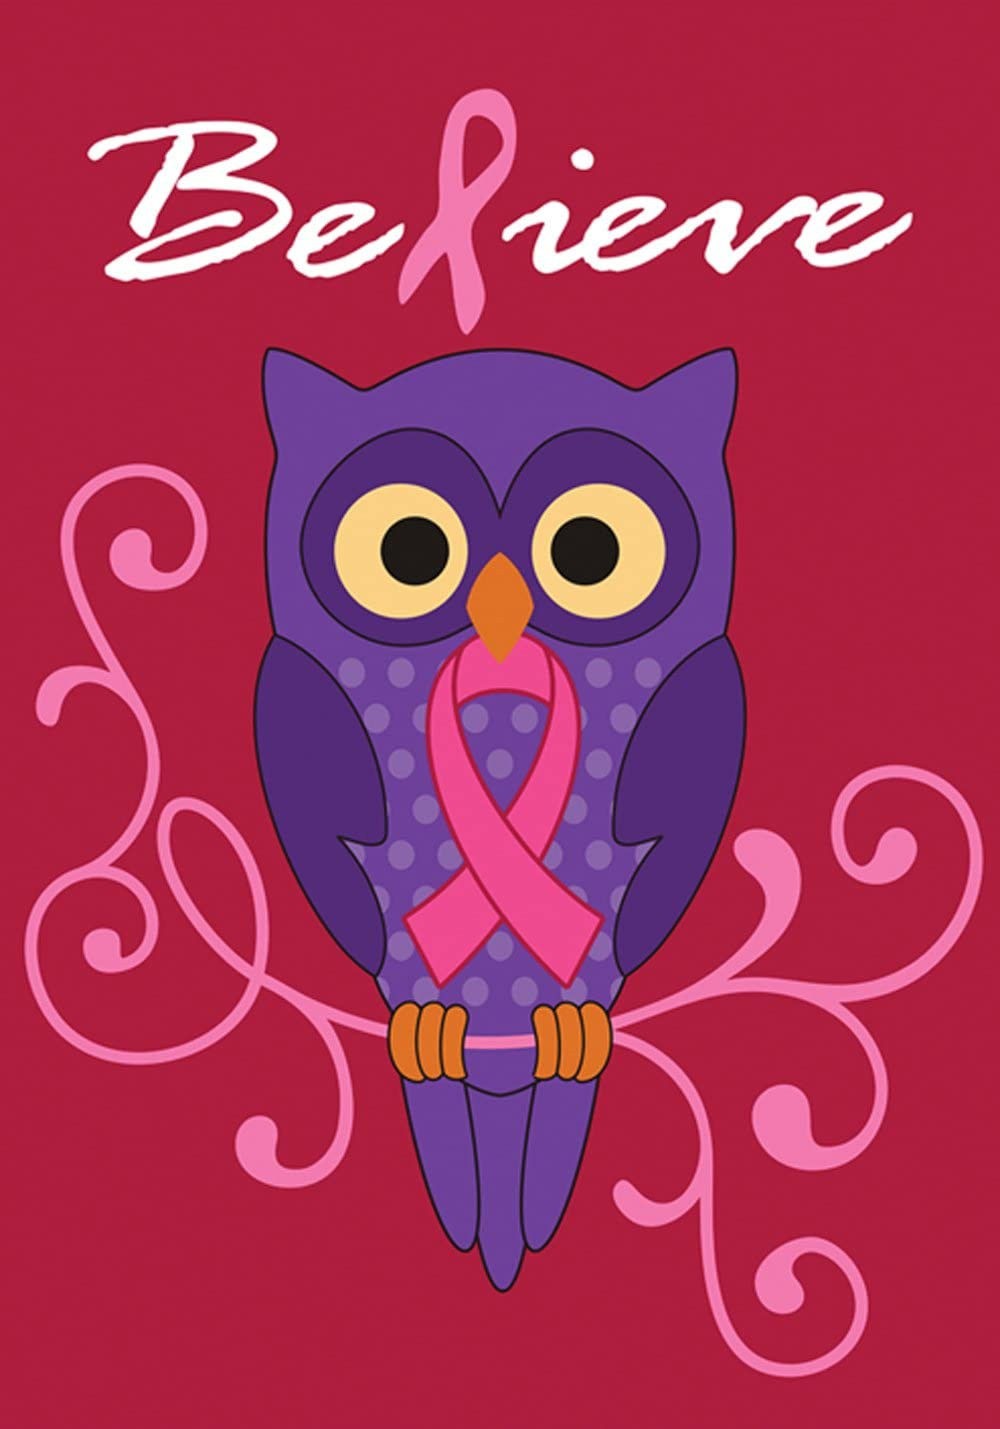 Toland Home Garden Believe 28 x 40 Inch Decorative Pink Breast Cancer Ribbon Support Owl House Flag